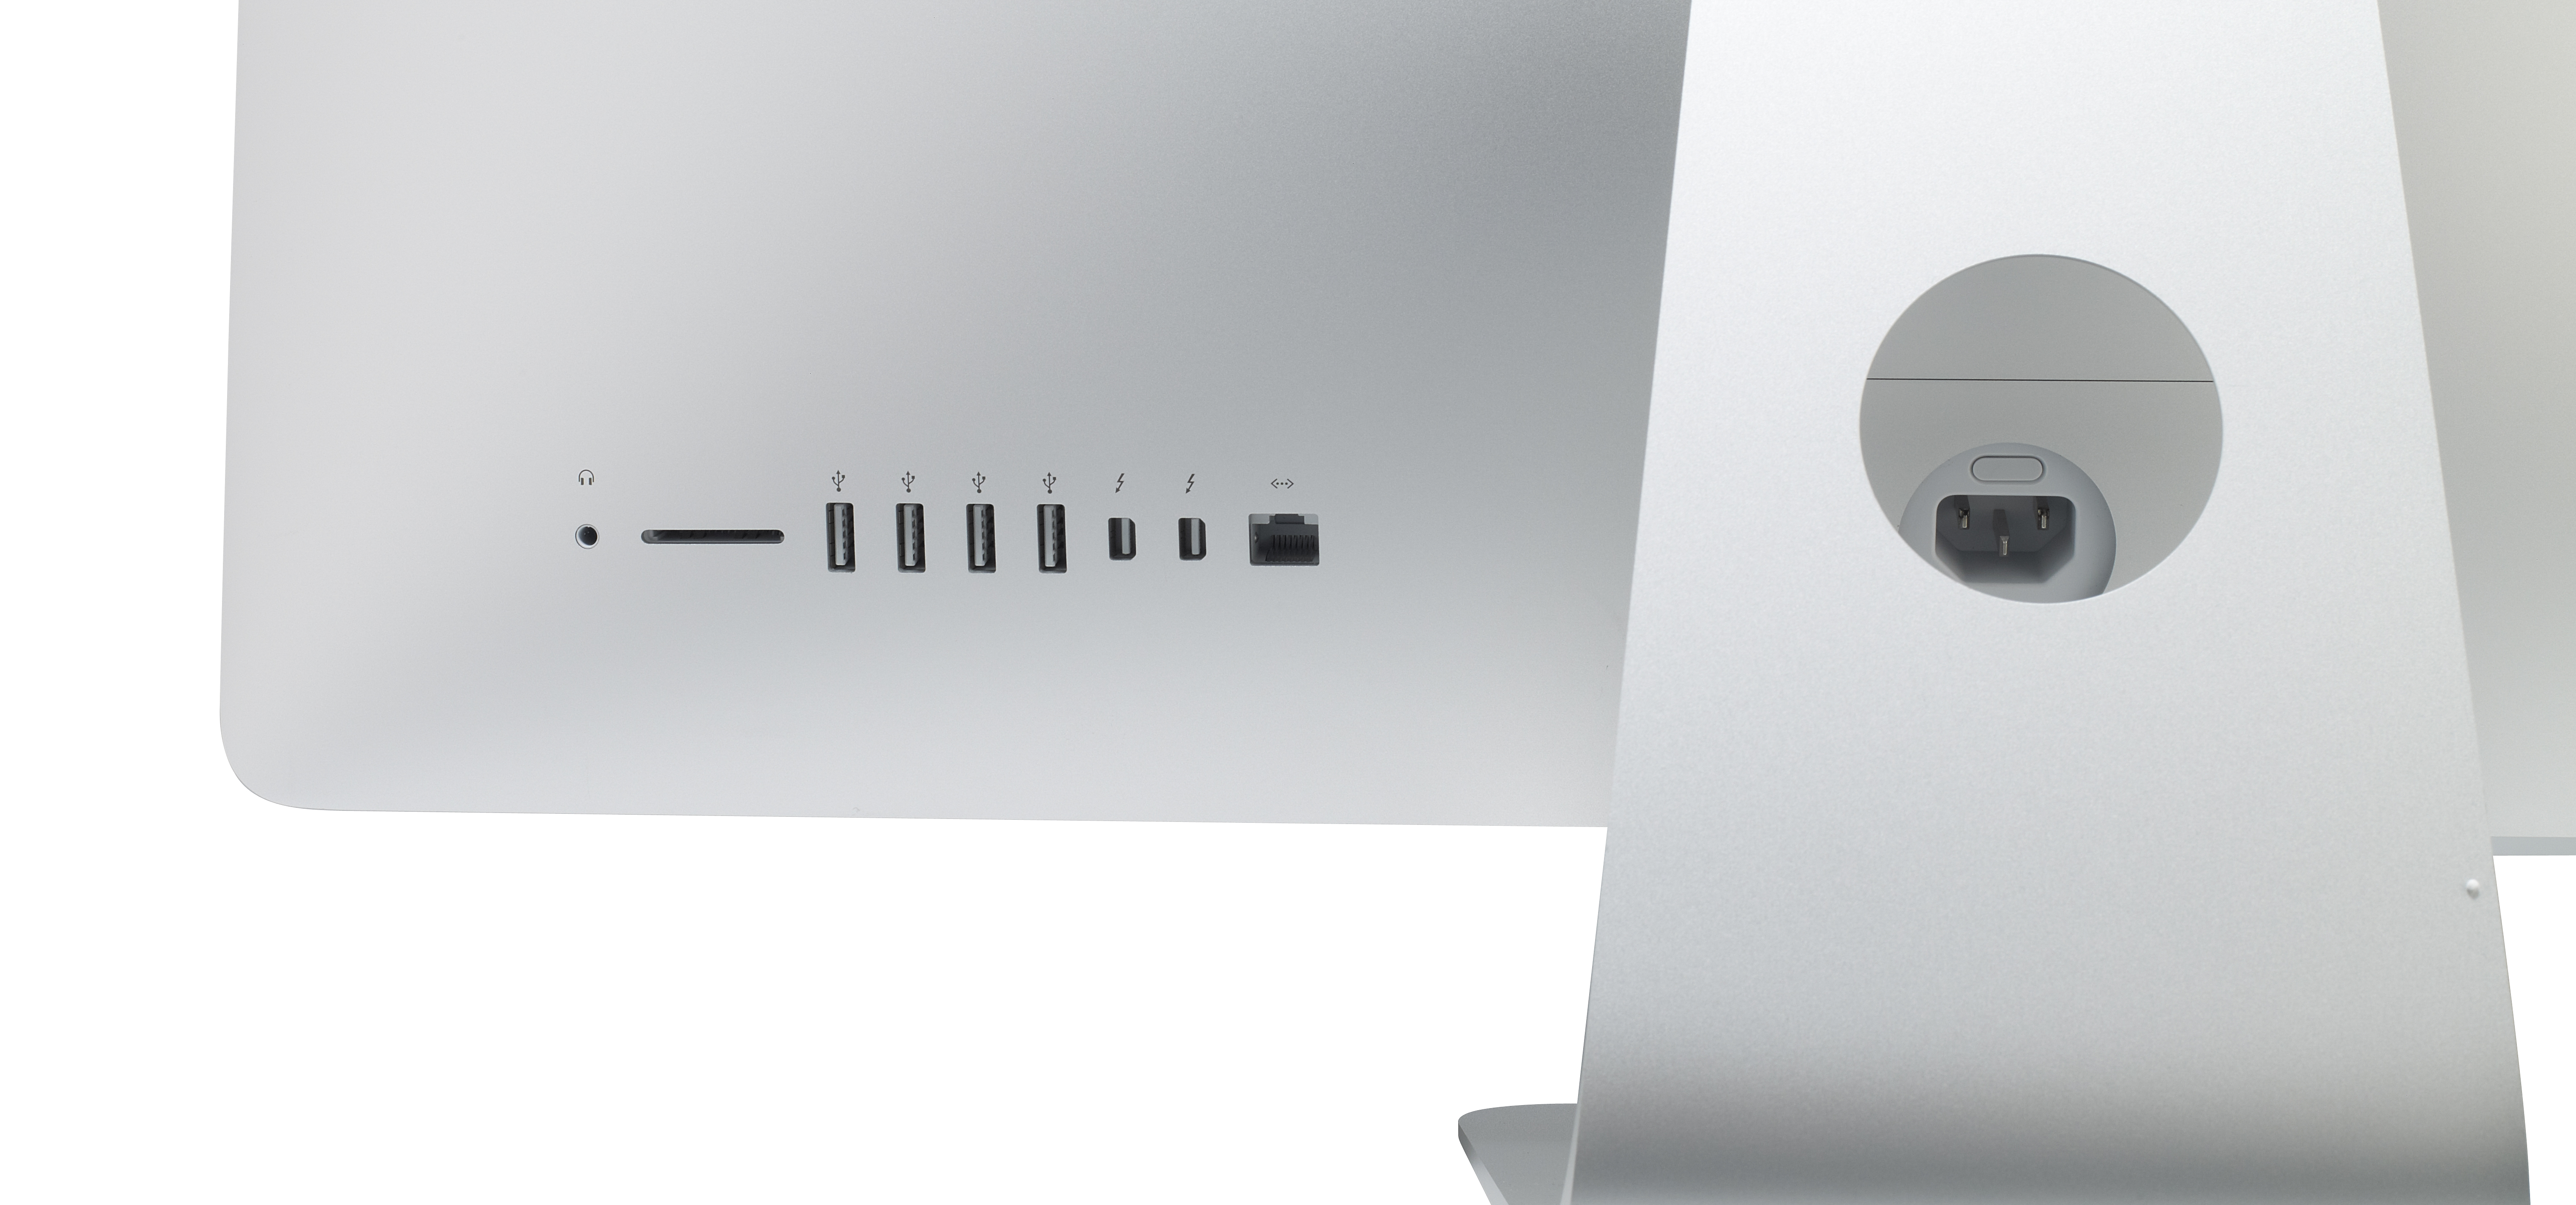 iMac external features, ports, and connectors - Apple Support